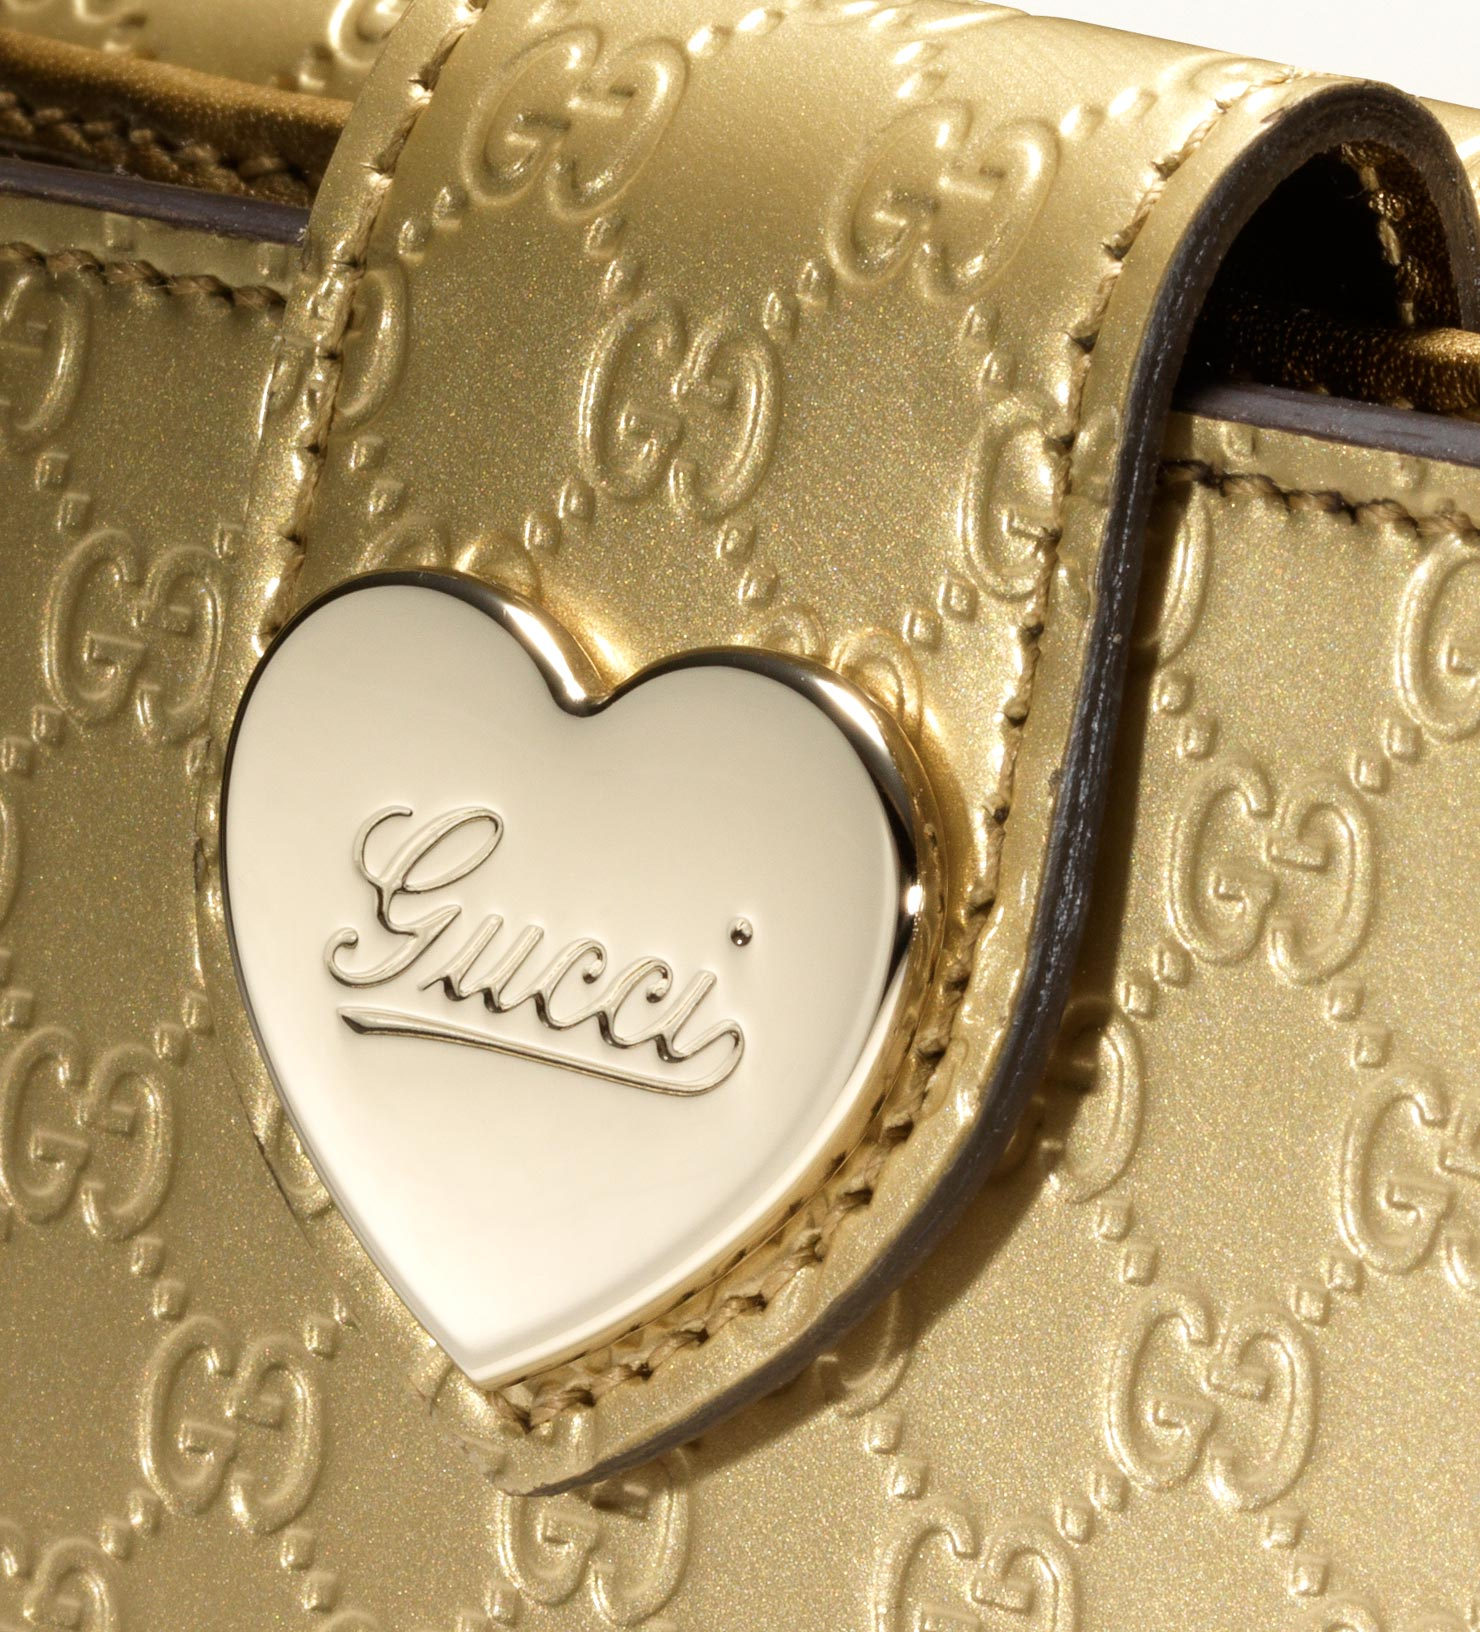 ef4d5fd65c34 Gucci Heart Flap French Wallet in Metallic - Lyst